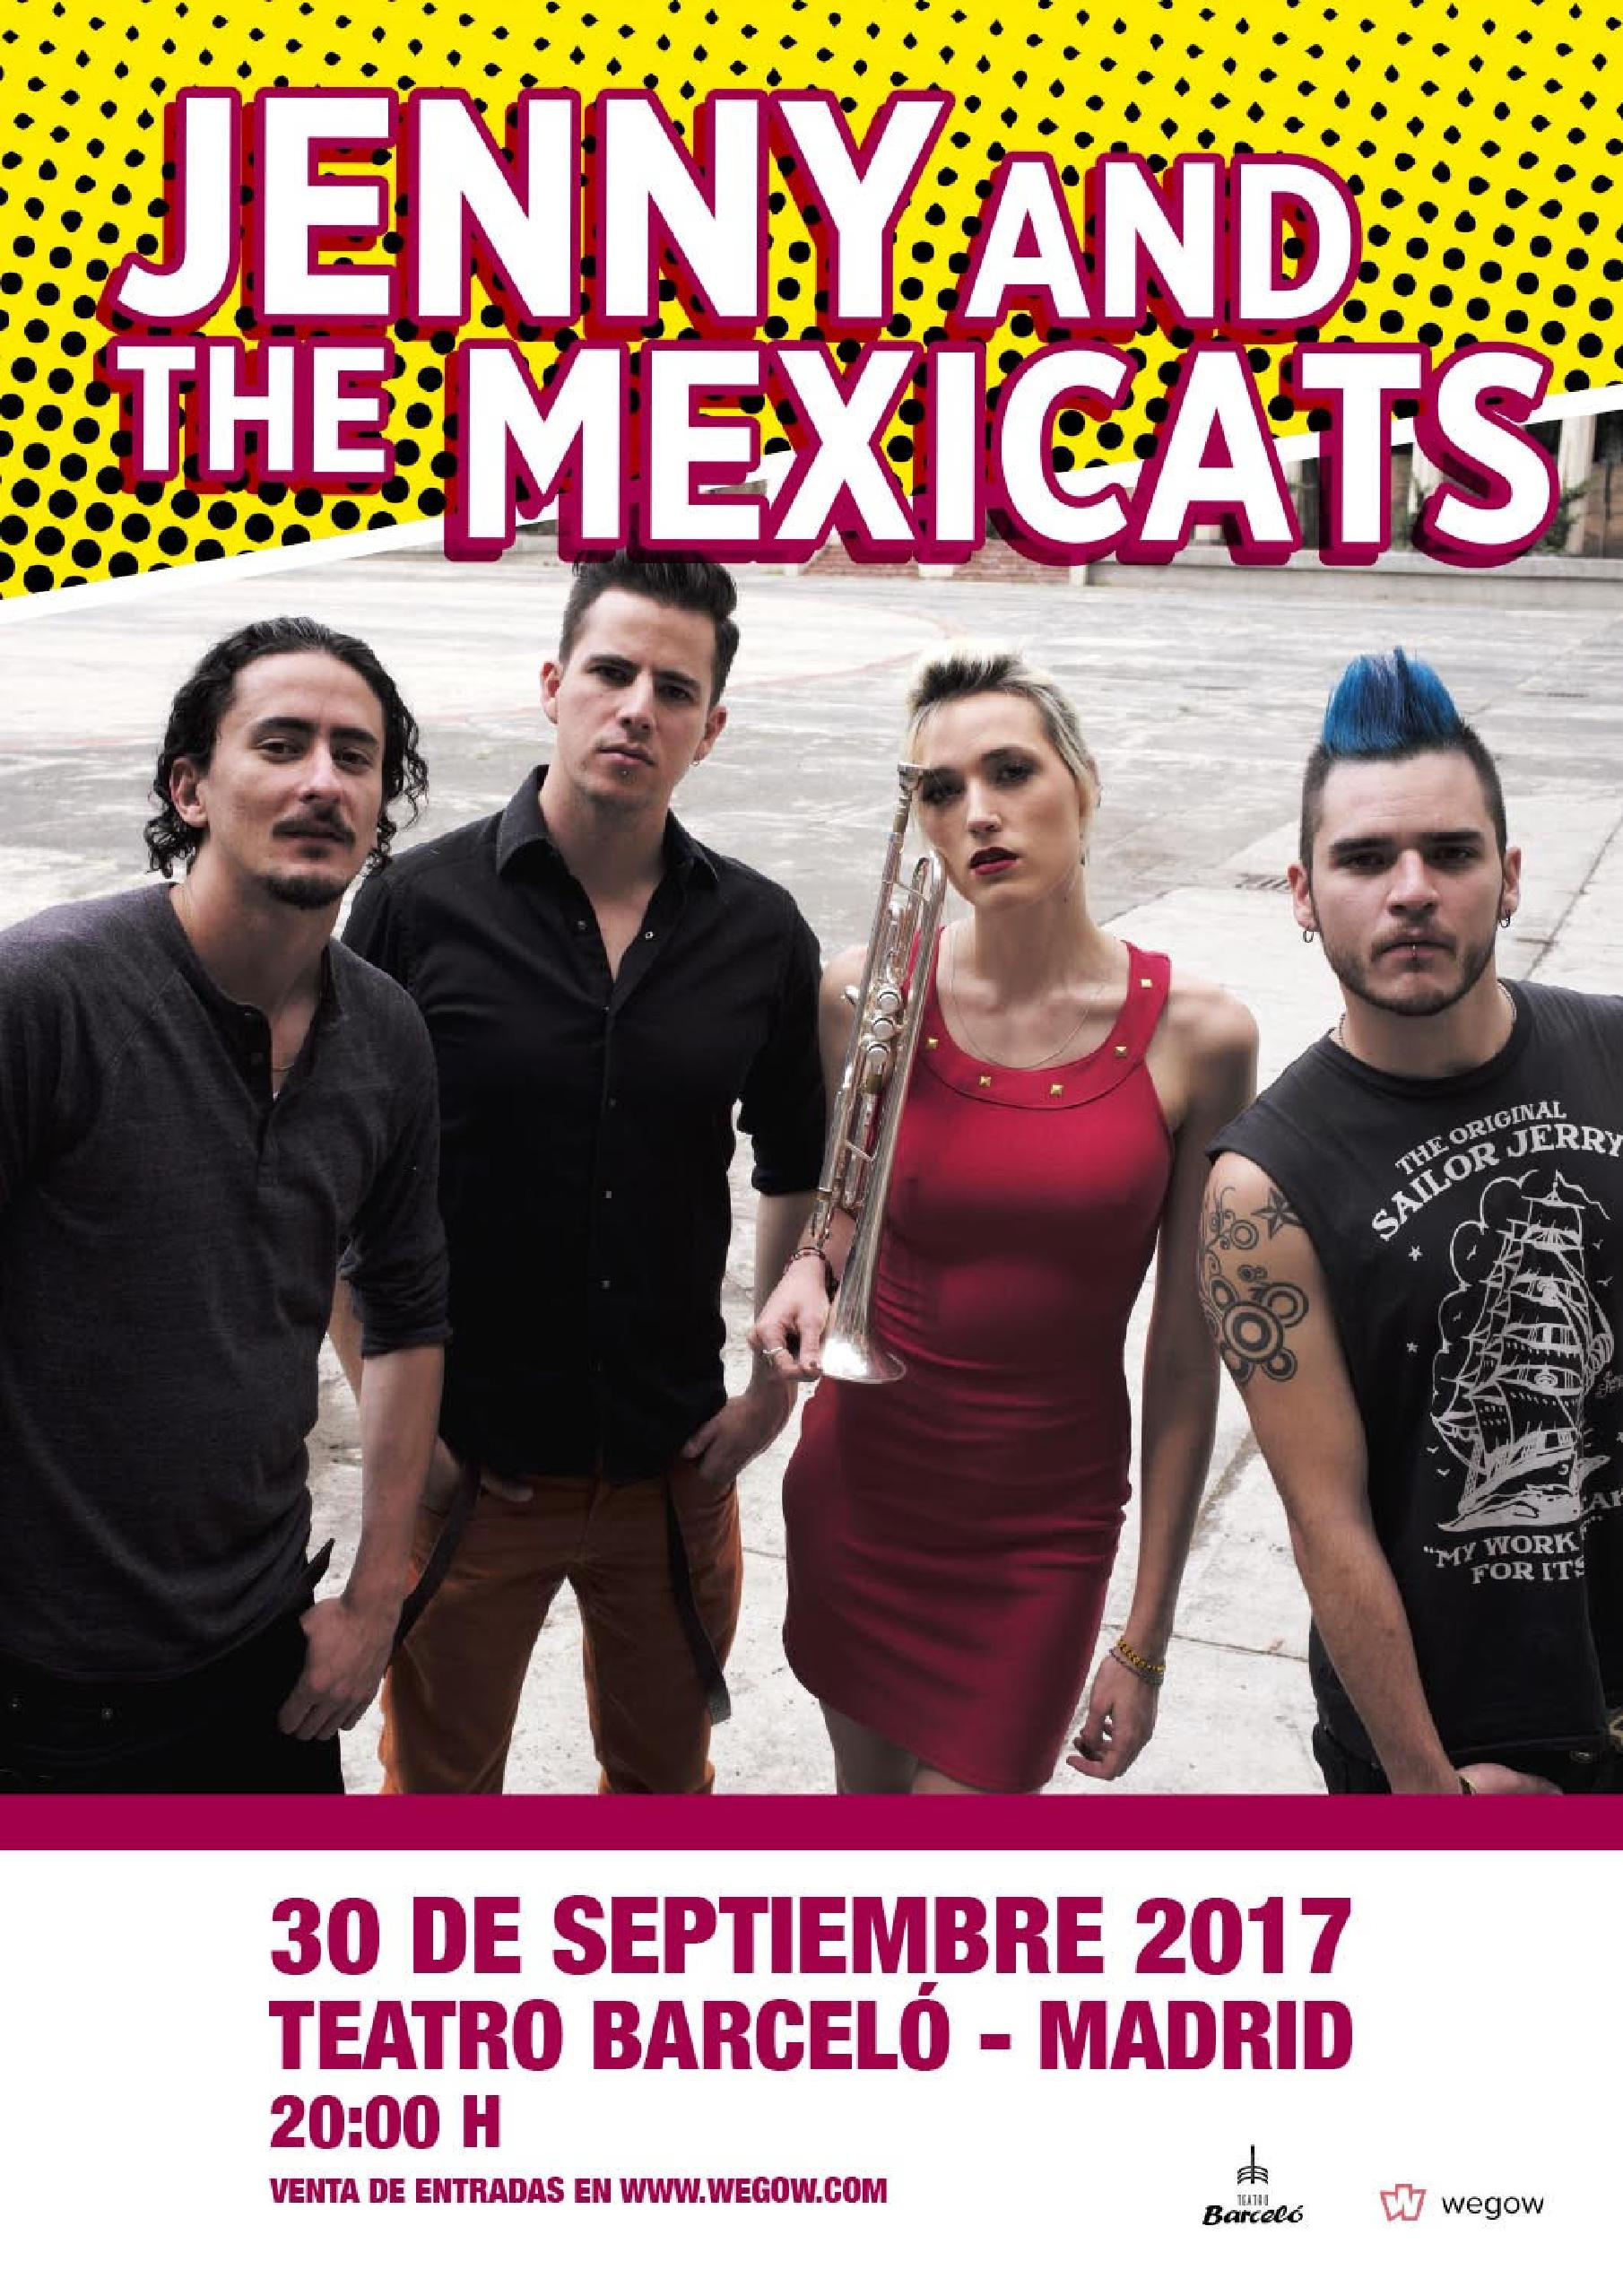 Jenny and the mexicats Madrid septiembre